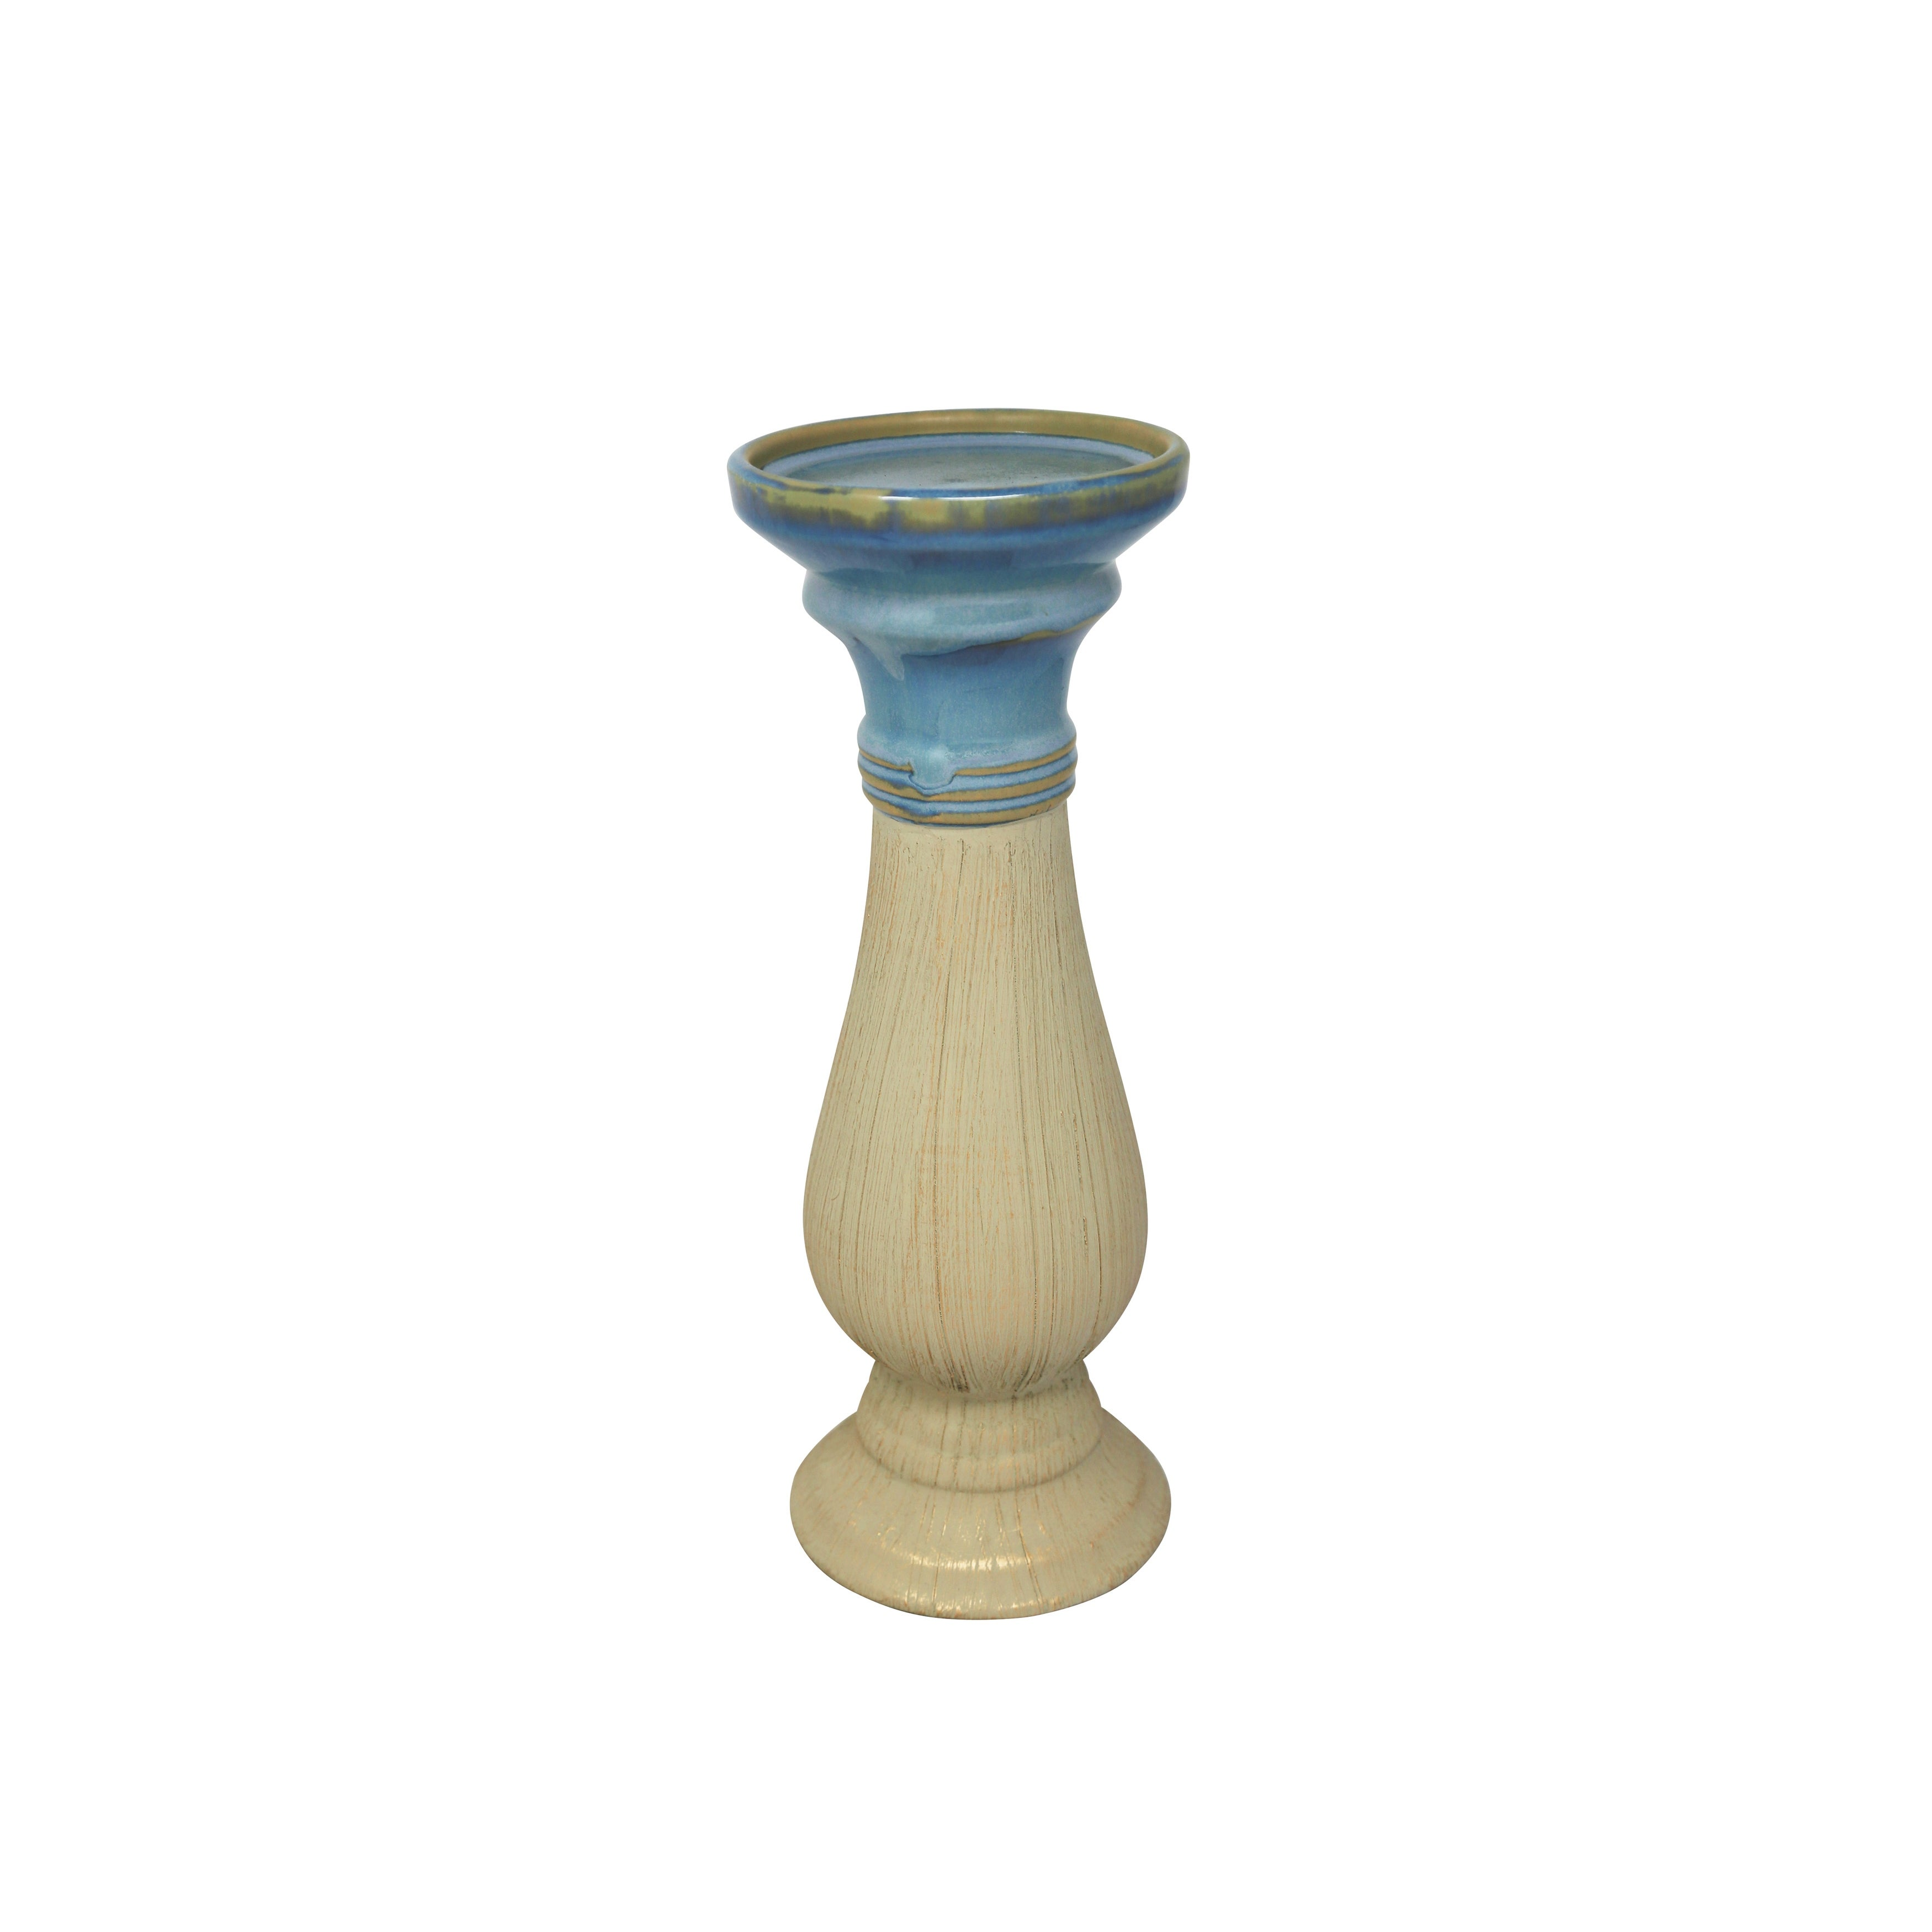 Dual Tone Decorative Ceramic Candle Holder with Circular Base, Blue and Beige